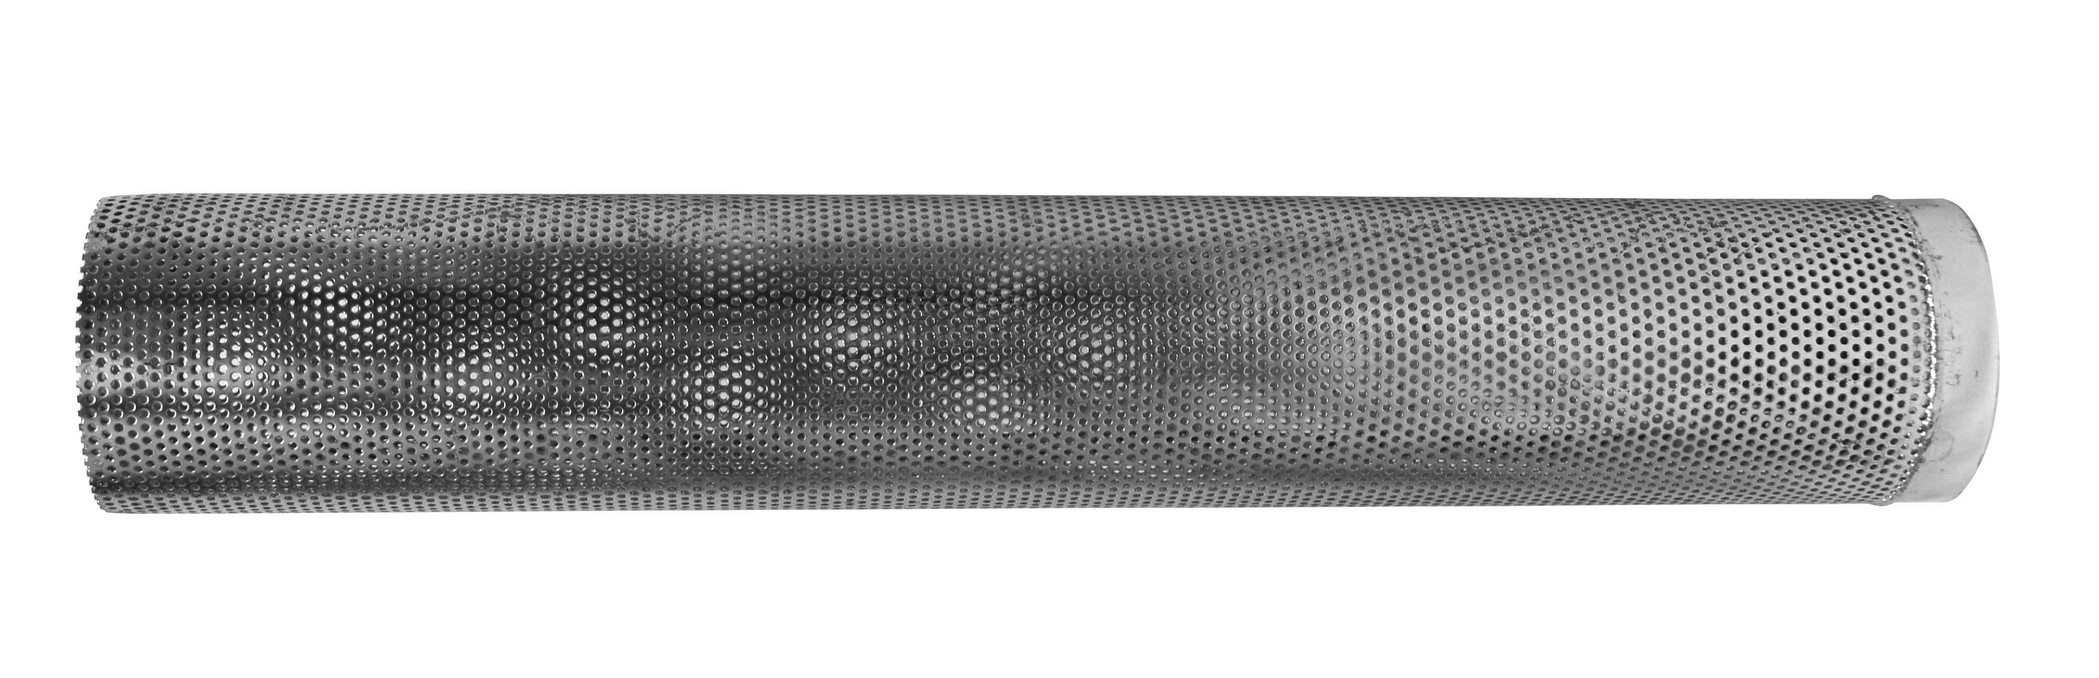 PicturesCategory/SRXL Strainer Horizontal.jpg